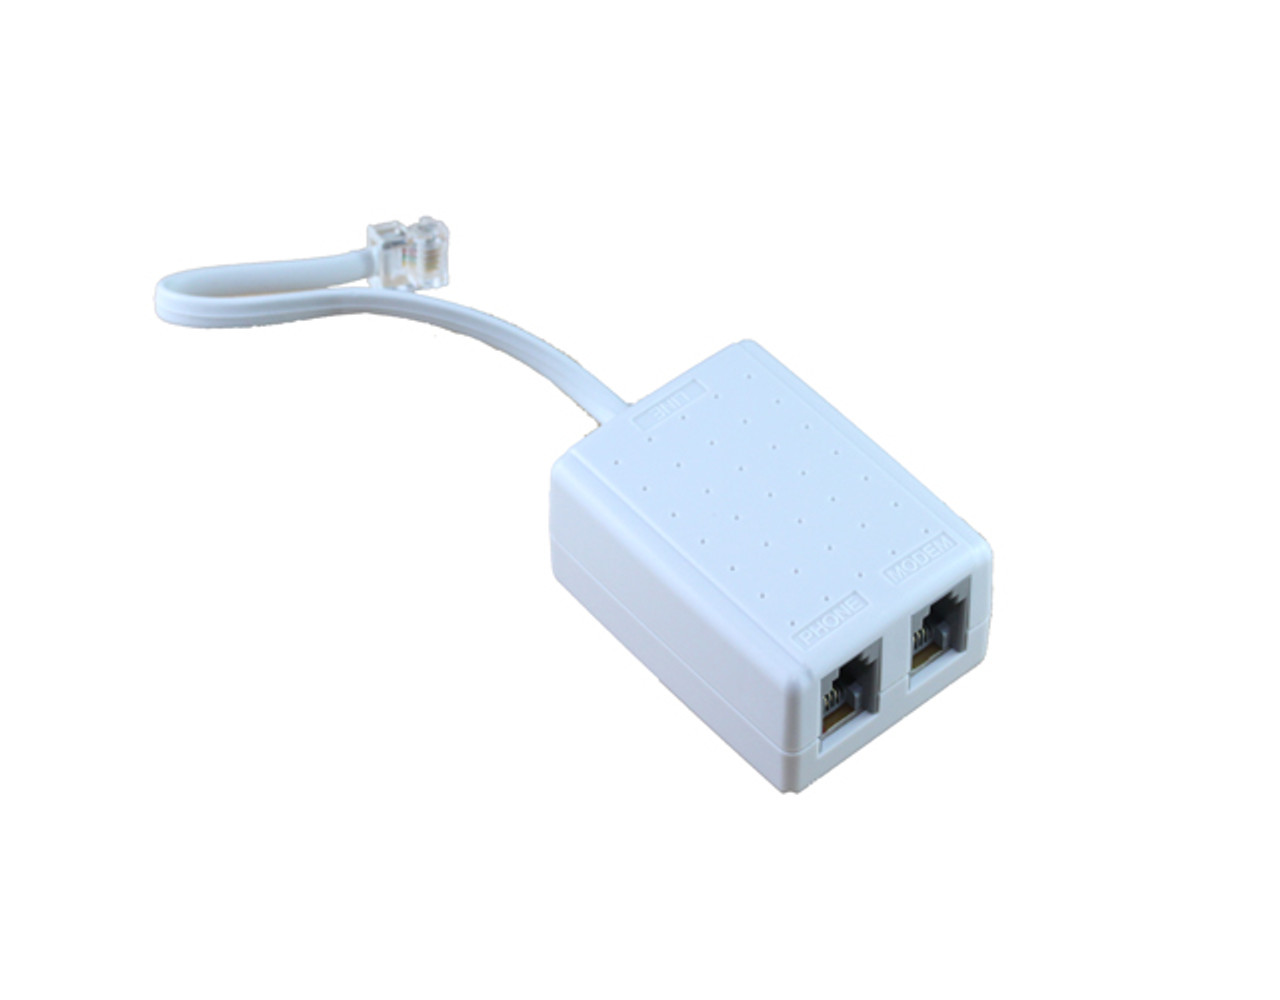 Product image for ADSL2 Plus Filter/Splitter | CX Computer Superstore